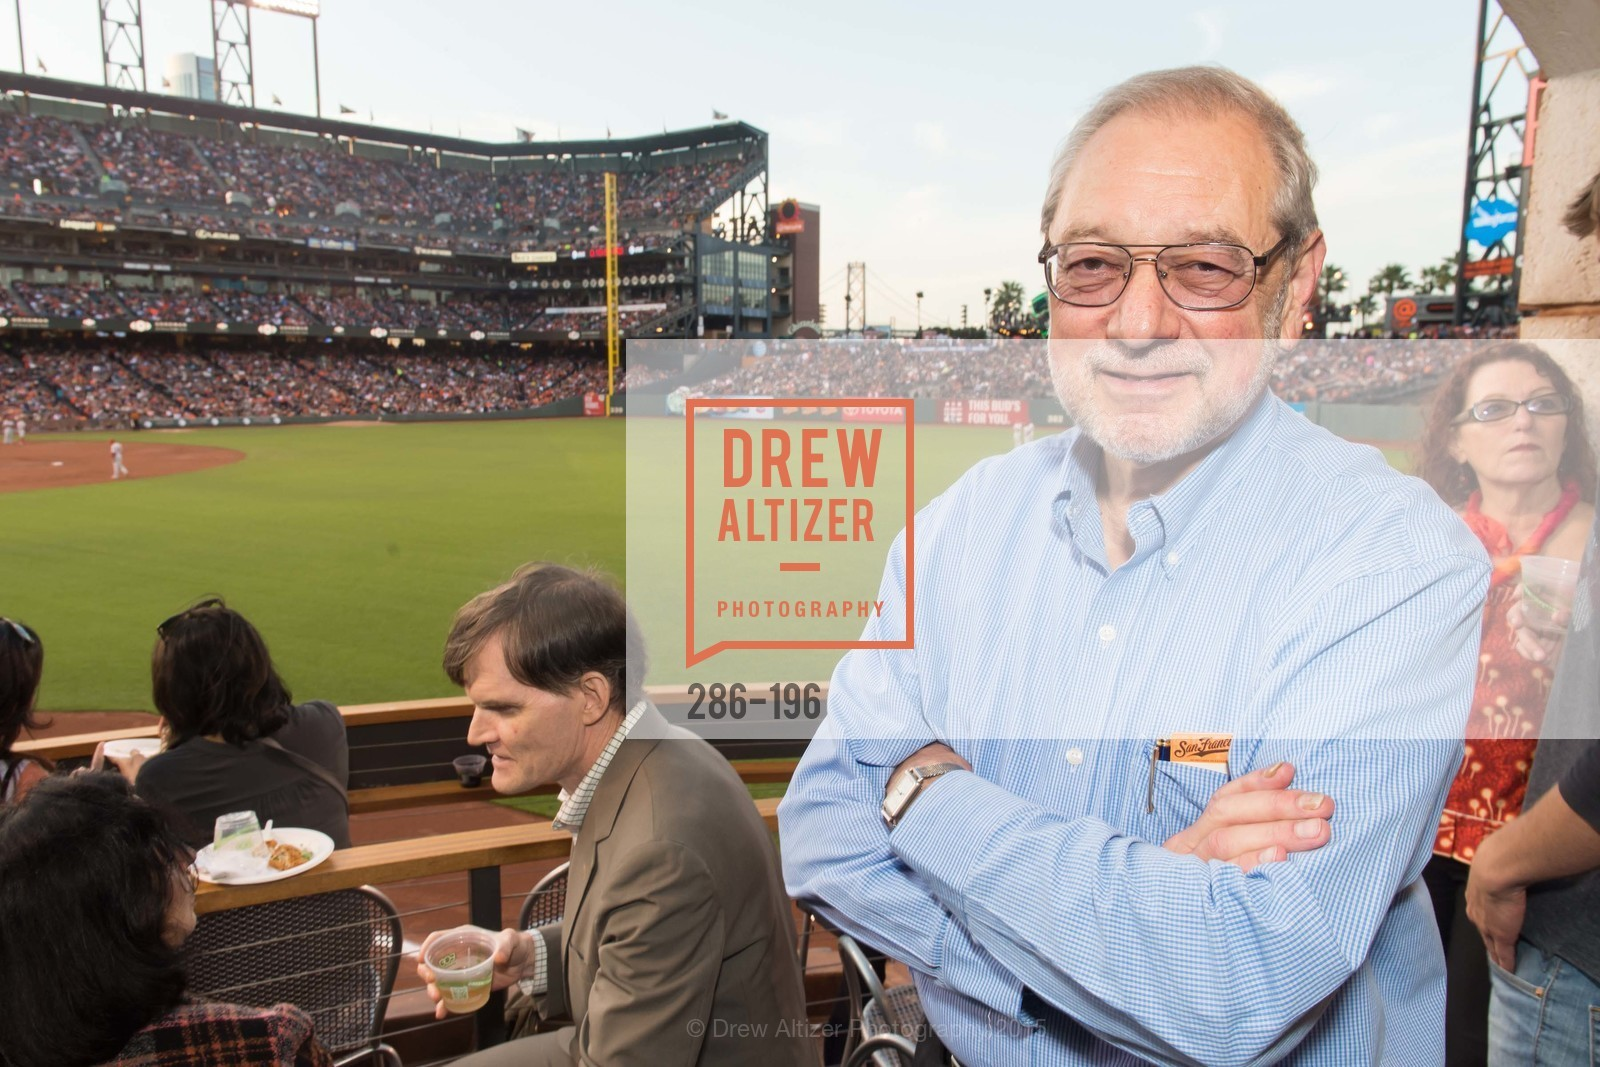 Dan Berger, Francis Ford Coppola Winery Presents Diamond on the Diamond, San Francisco Giants AT&T Park, Virgin America Loft. 24 Willie Mays Plaza, July 10th, 2015,Drew Altizer, Drew Altizer Photography, full-service agency, private events, San Francisco photographer, photographer california